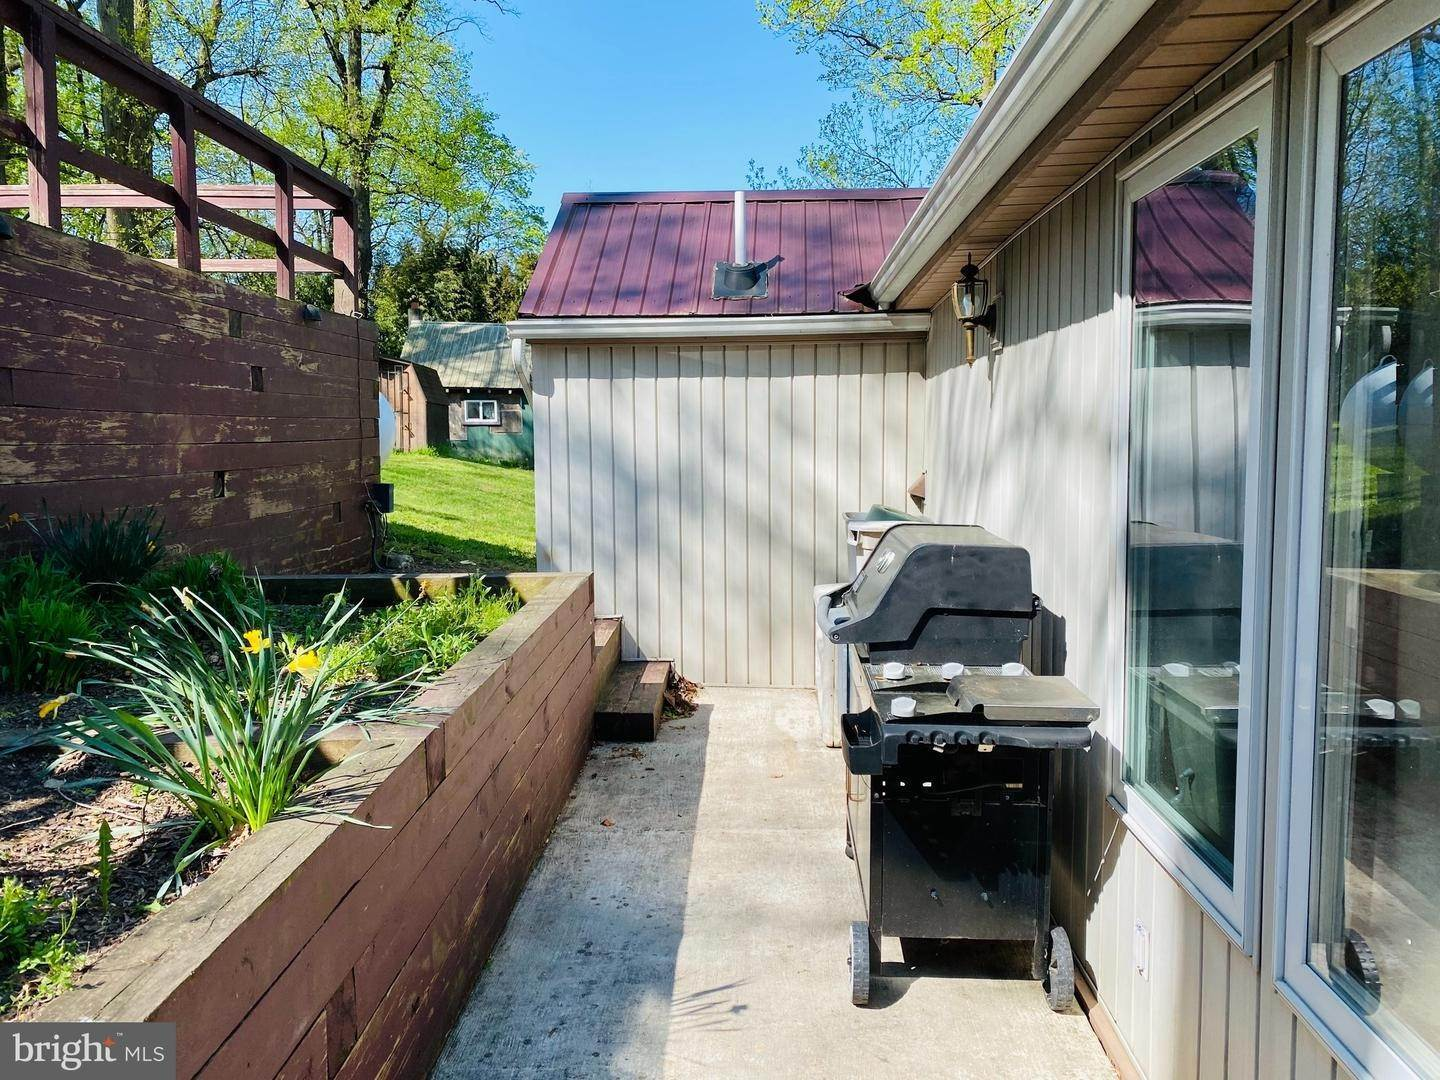 5. Residential for Sale at 411 PEACH BOTTOM Road Peach Bottom, Pennsylvania 17563 United States